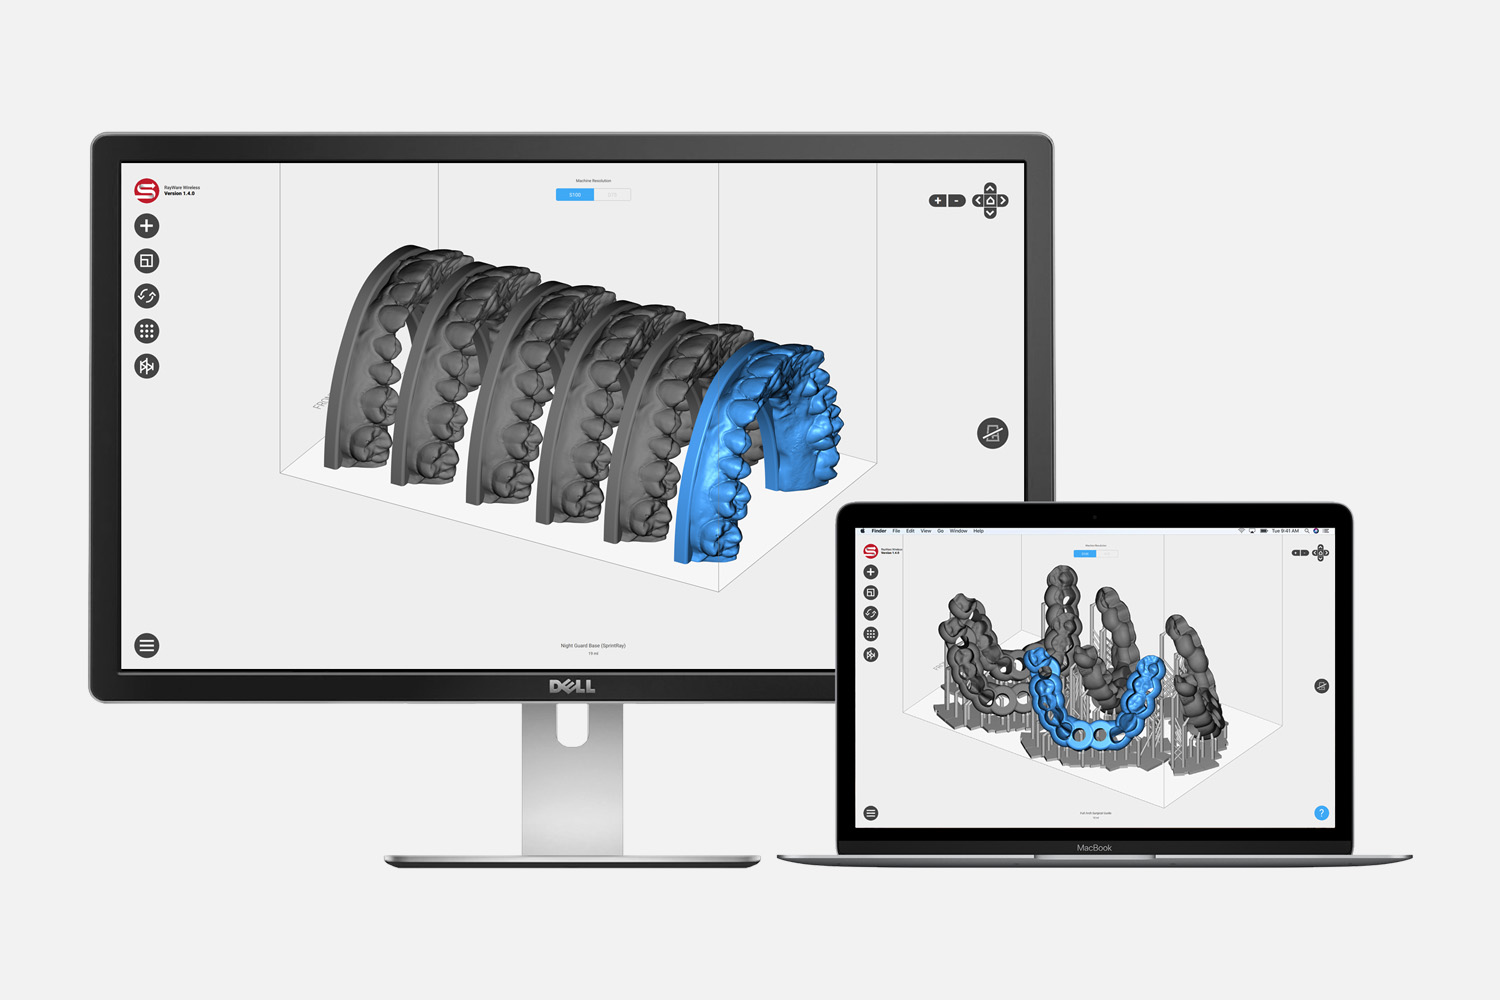 Our 3D dental printer's SprintRay software makes printing simple